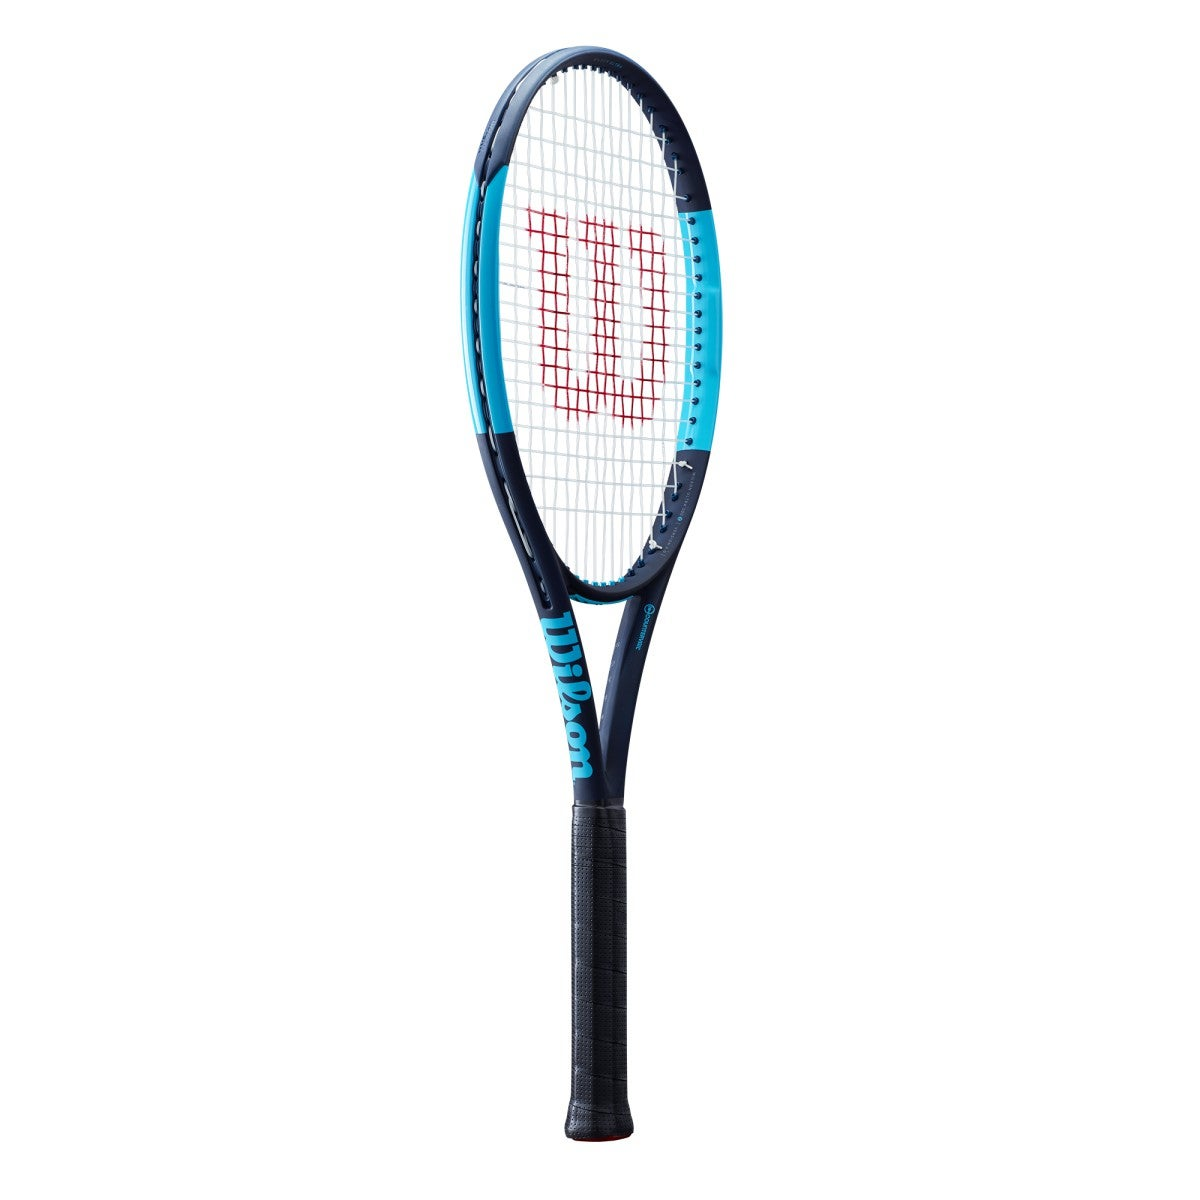 Ultra 100 CV Tennis Racket